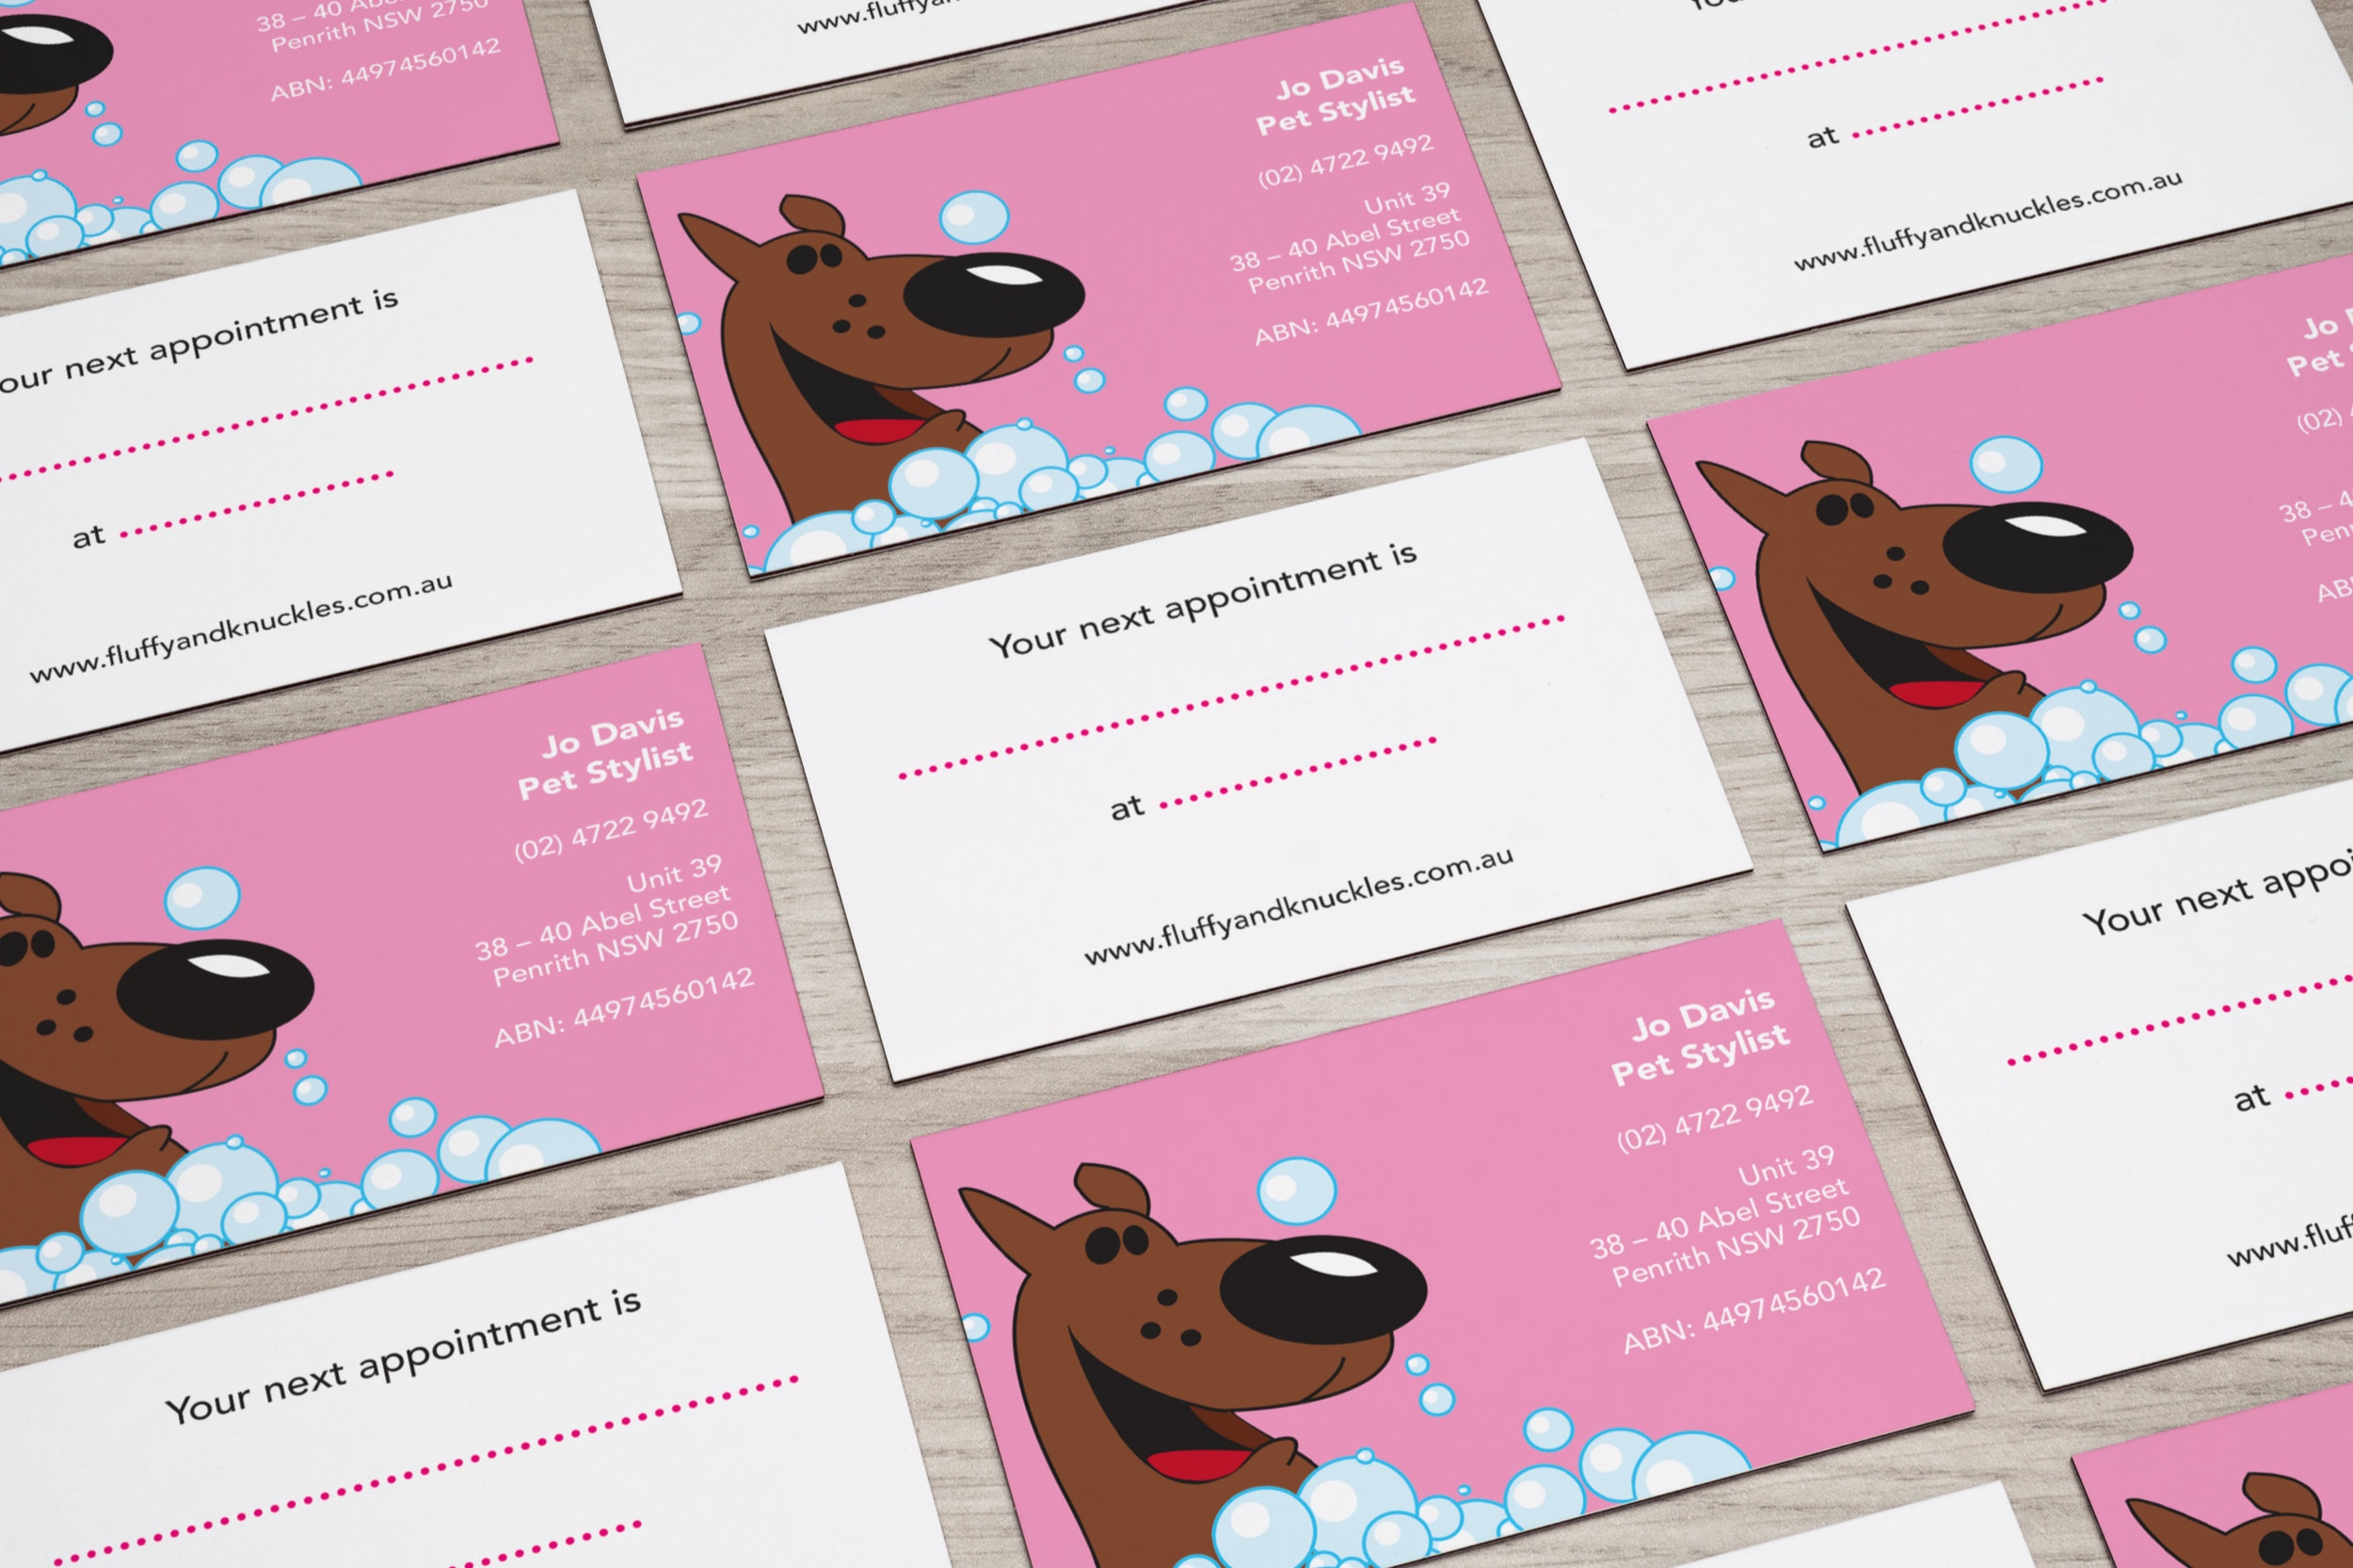 Business card design – Fluffy and Knuckles